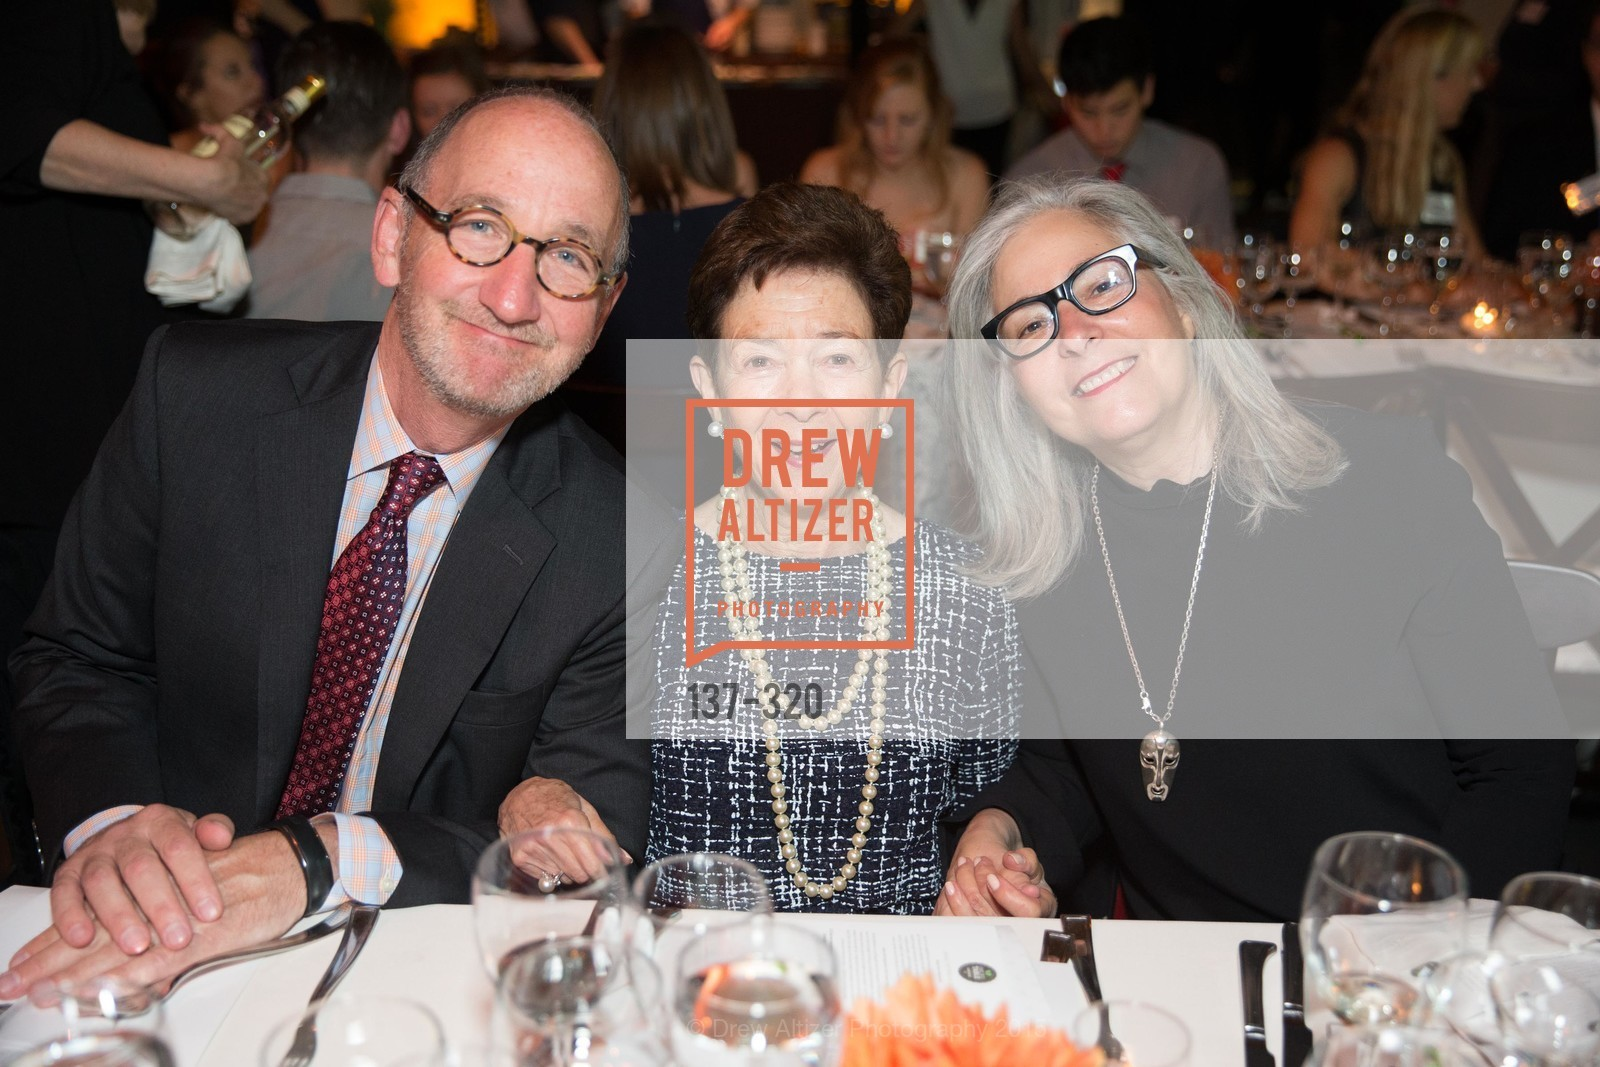 Mark Schlesinger, Roselyne Swig, Lori Starr, SF - Marin Food Bank Presents ONE BIG TABLE, SF- Marin Food Bank. 900 Pennsylvania Ave, September 26th, 2015,Drew Altizer, Drew Altizer Photography, full-service agency, private events, San Francisco photographer, photographer california